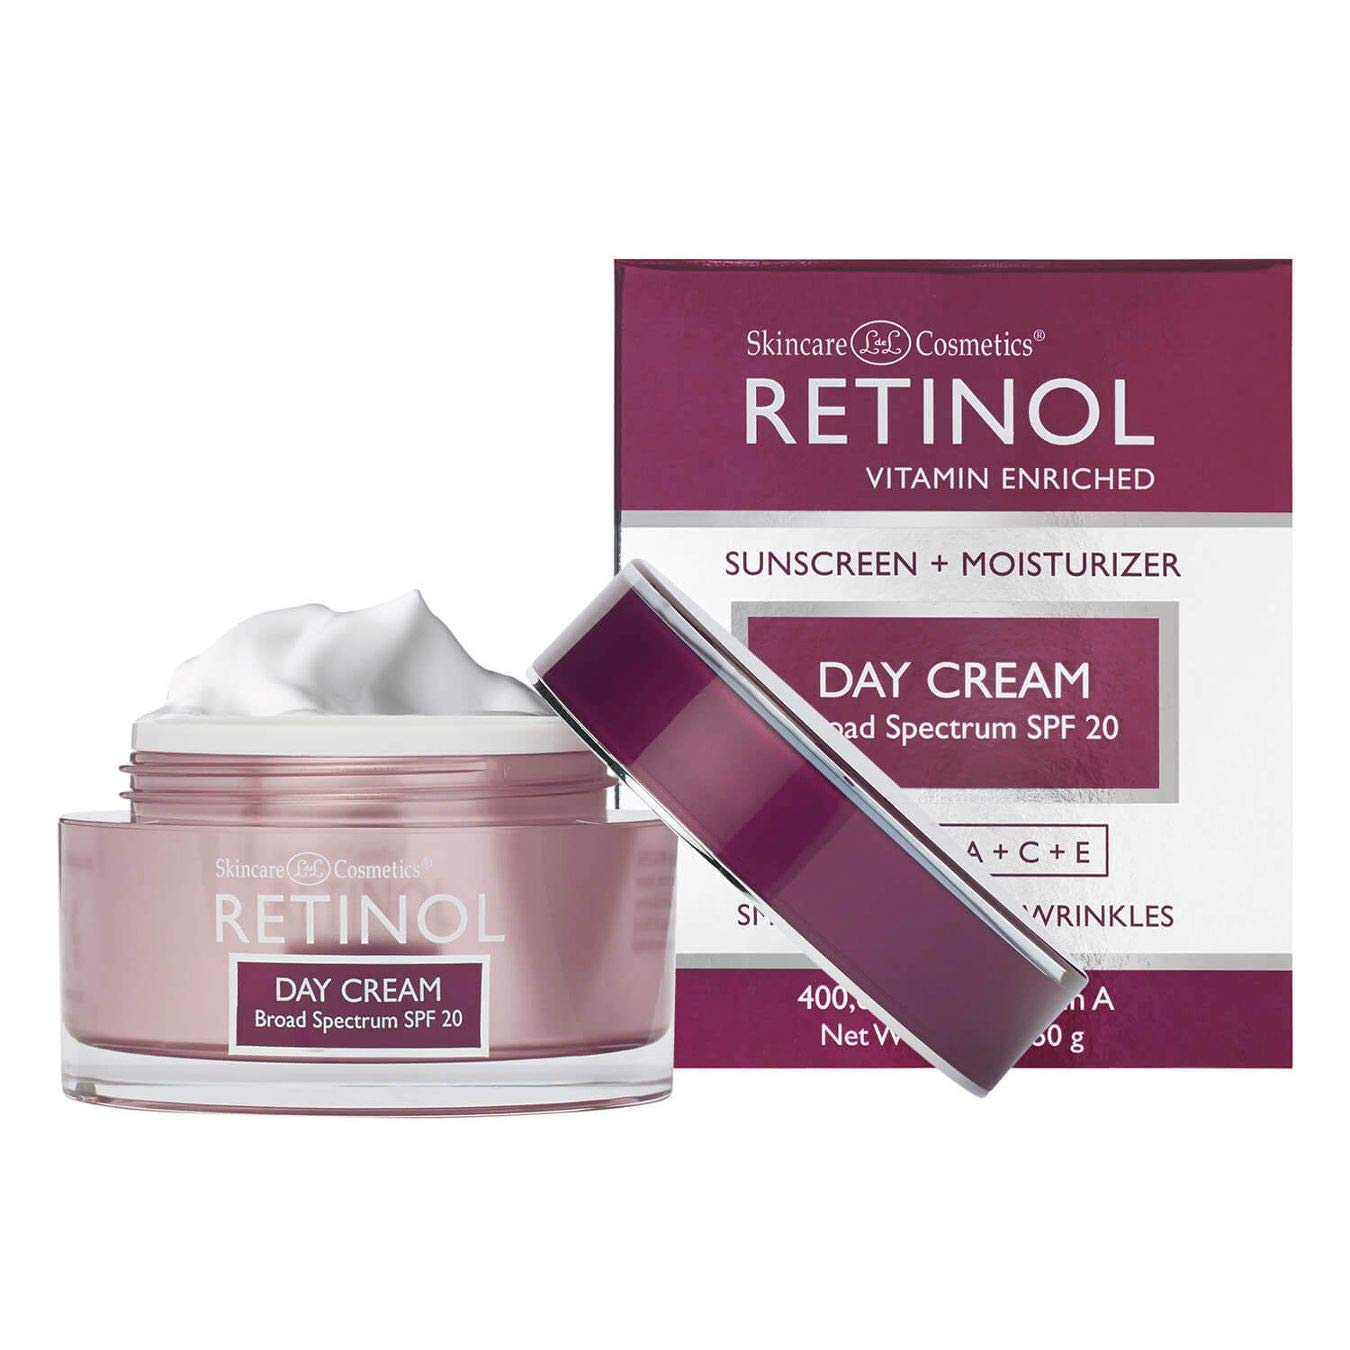 Retinol Day Cream Broad Spectrum SPF 20 – Protects Against Harmful Effects of UVA & UVB